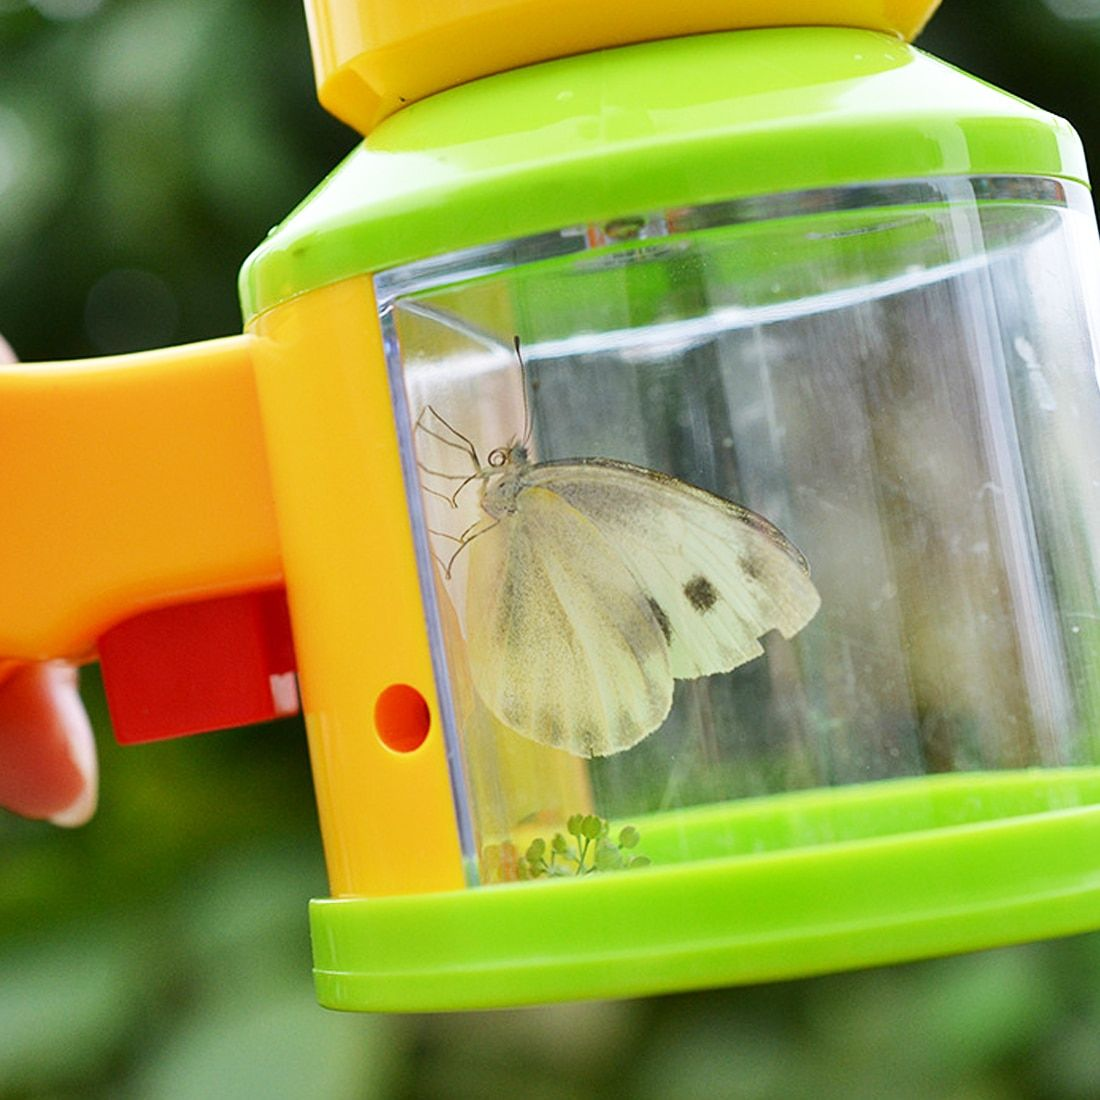 Bug Catcher Viewer Insect Magnifier Microscope Catching Kit Early Education Science Toys for Children